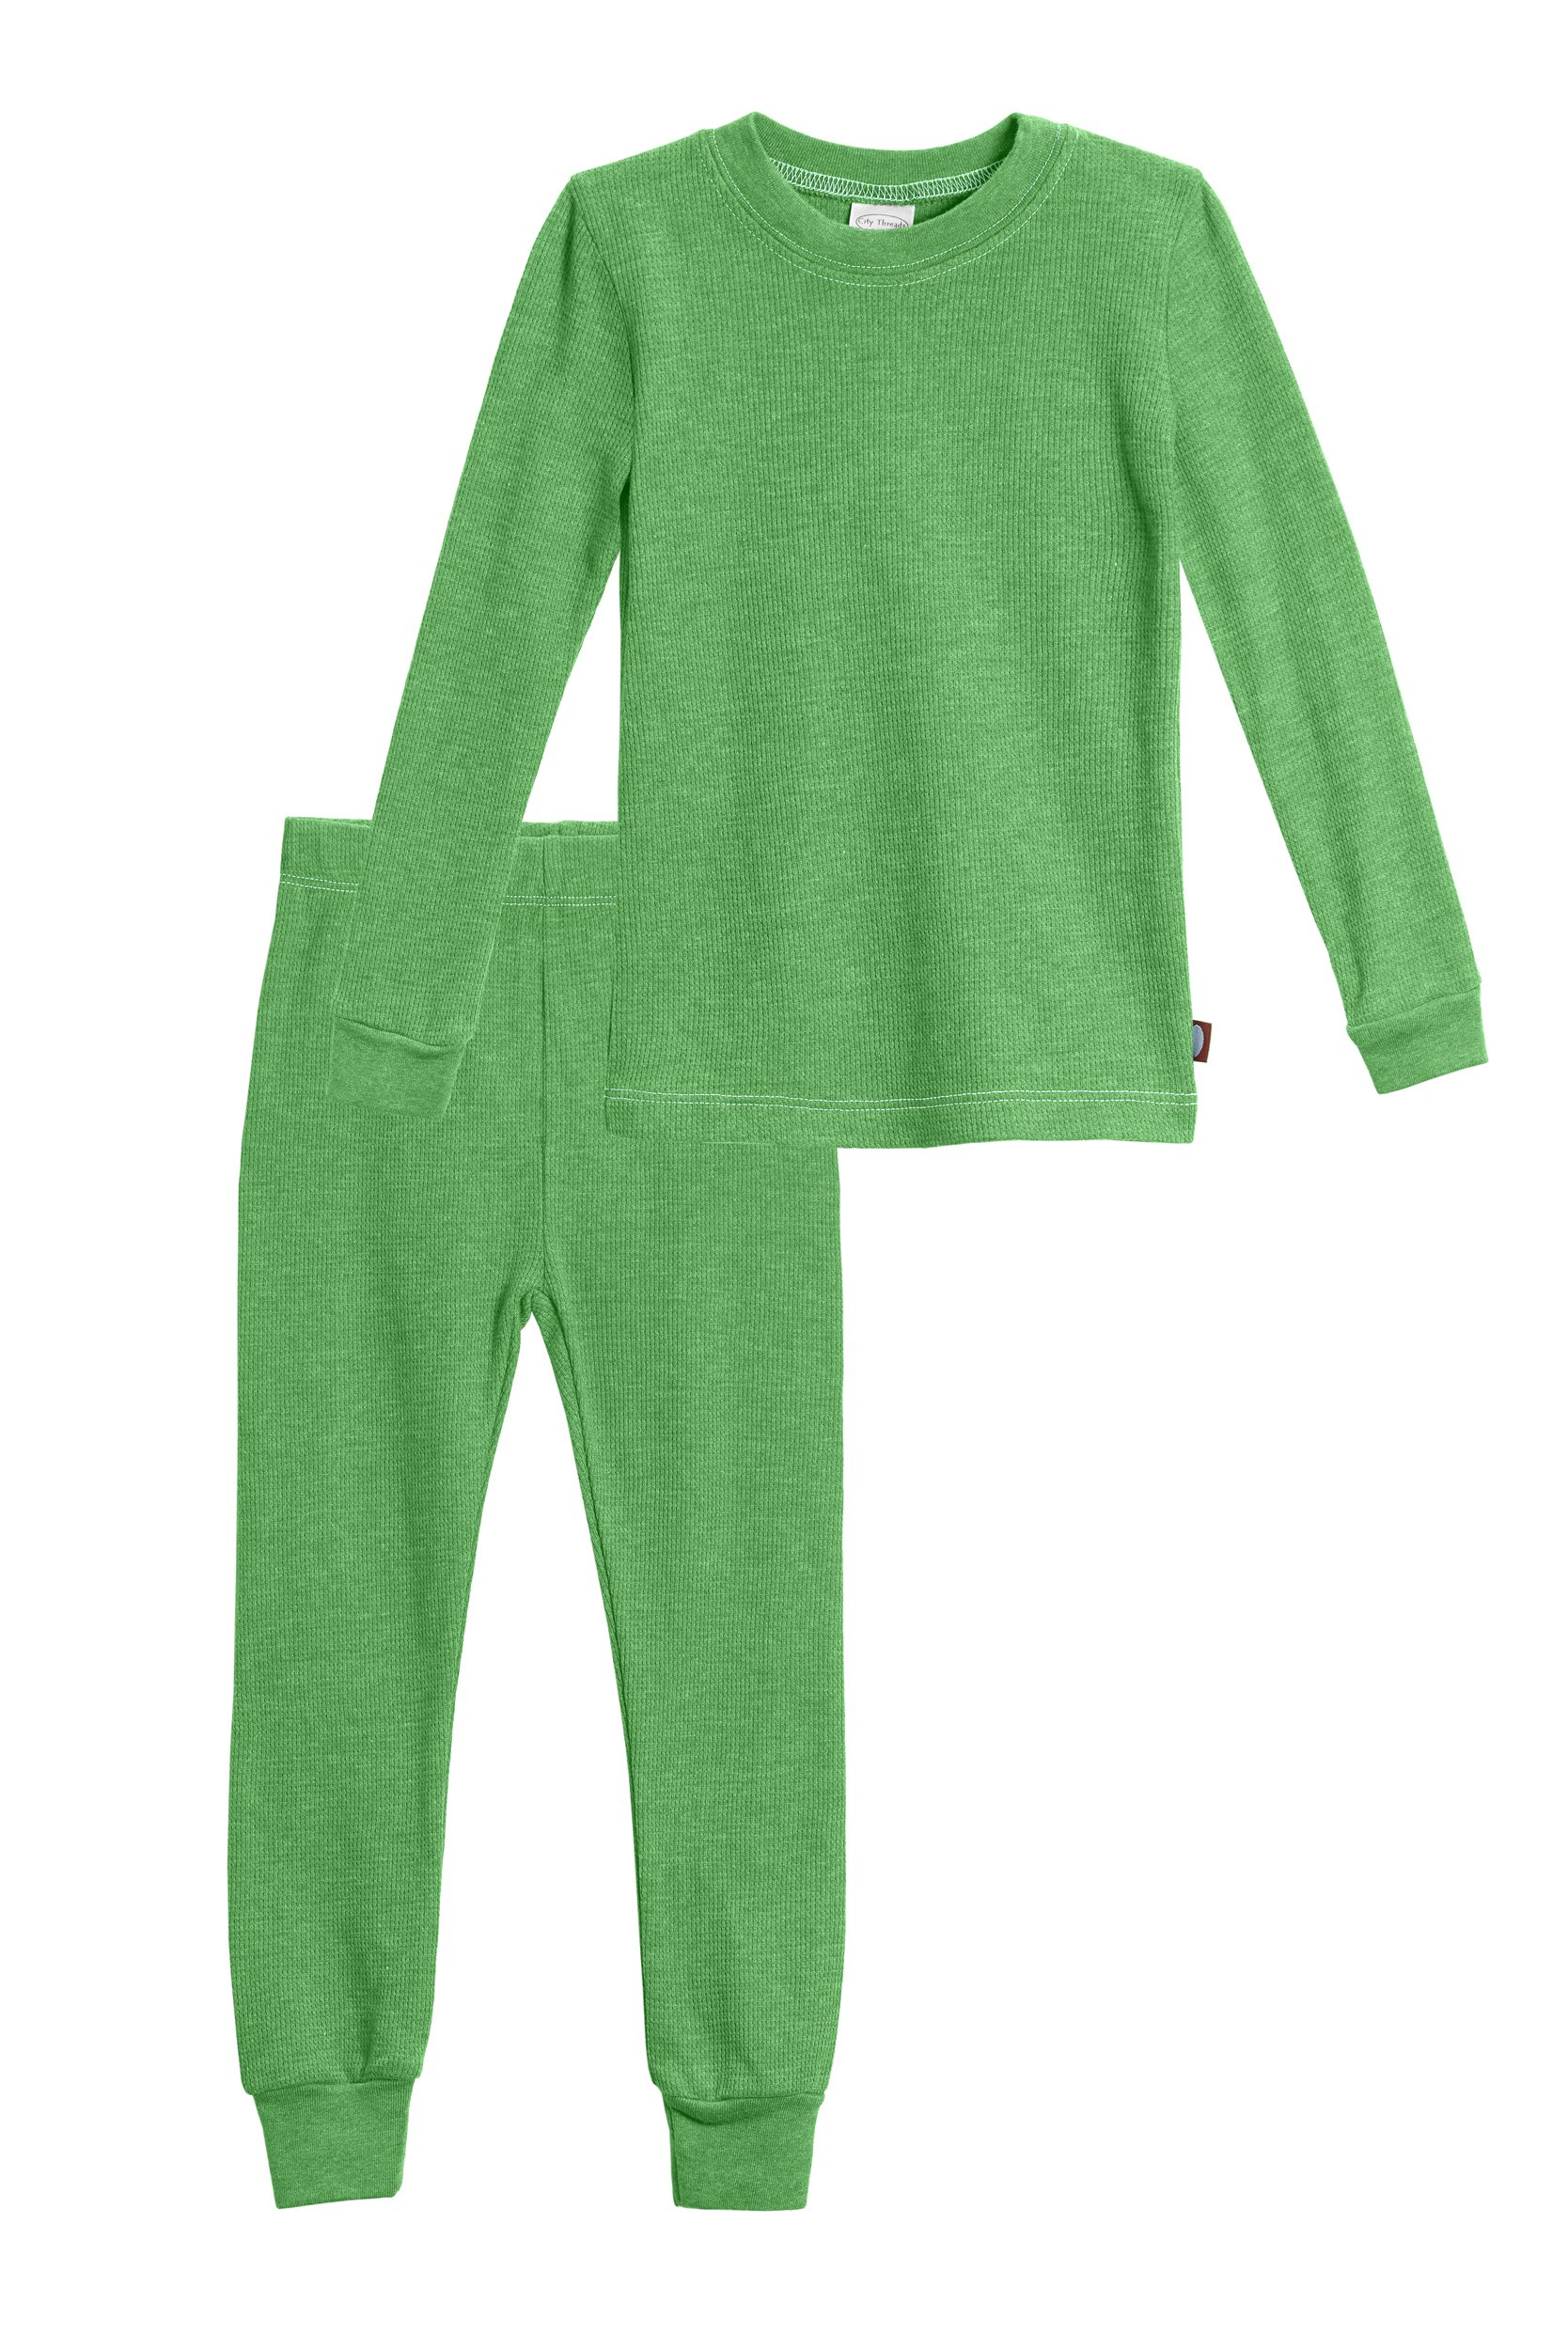 City Threads Little Boys Thermal Underwear Set Perfect For Sensitive Skin SPD Sensory Friendly, Elf Green- 6 by City Threads